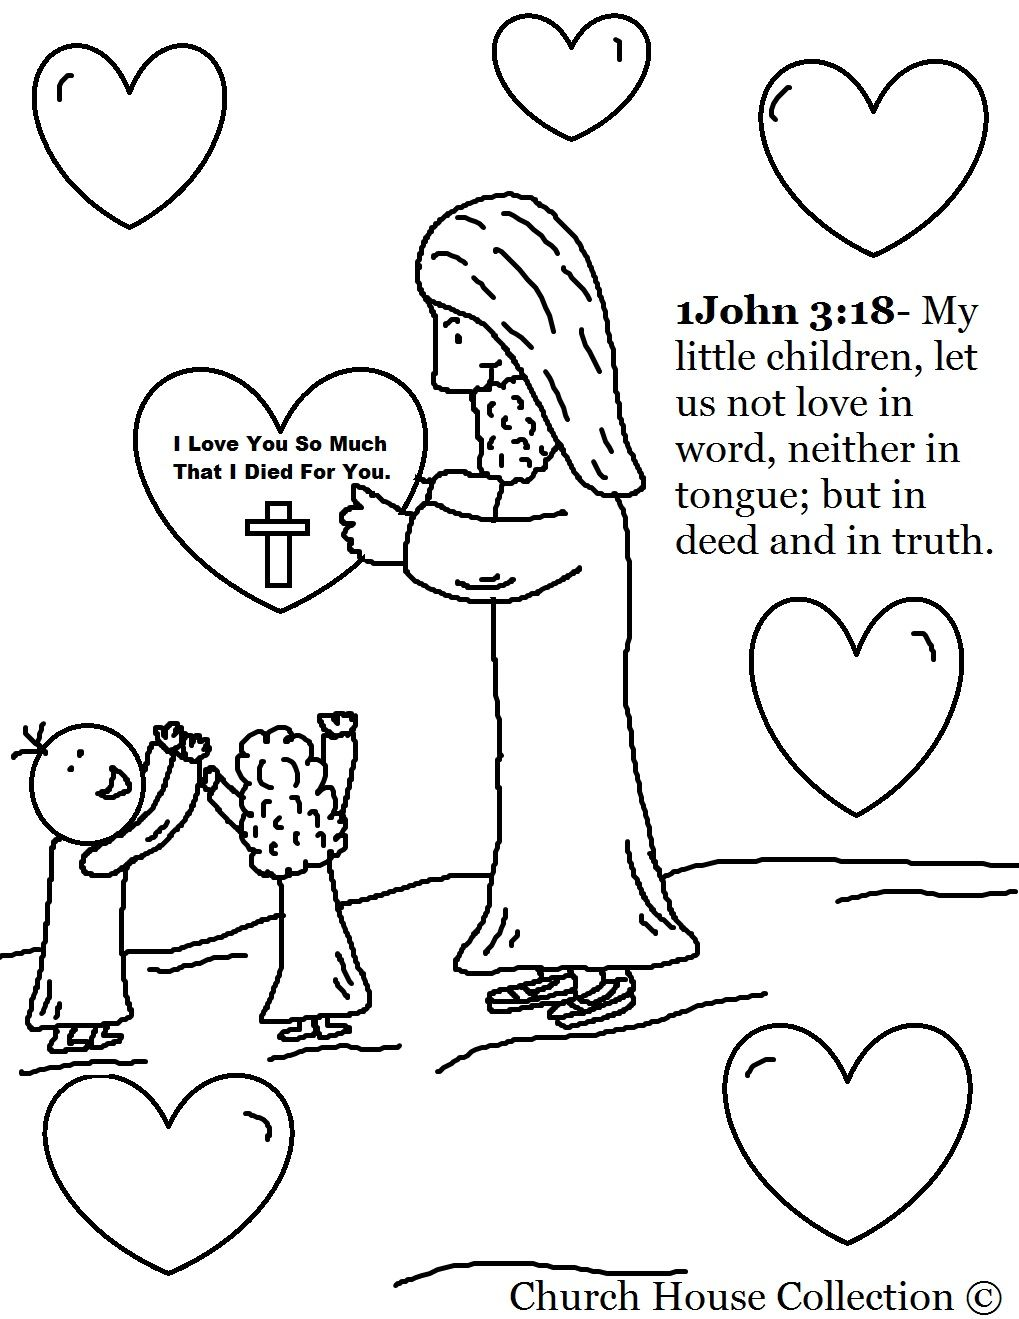 Clip Art Sunday School Coloring Pages For Preschoolers Free 1000 images about kids coloring pages on pinterest childrens sunday school and adult pages